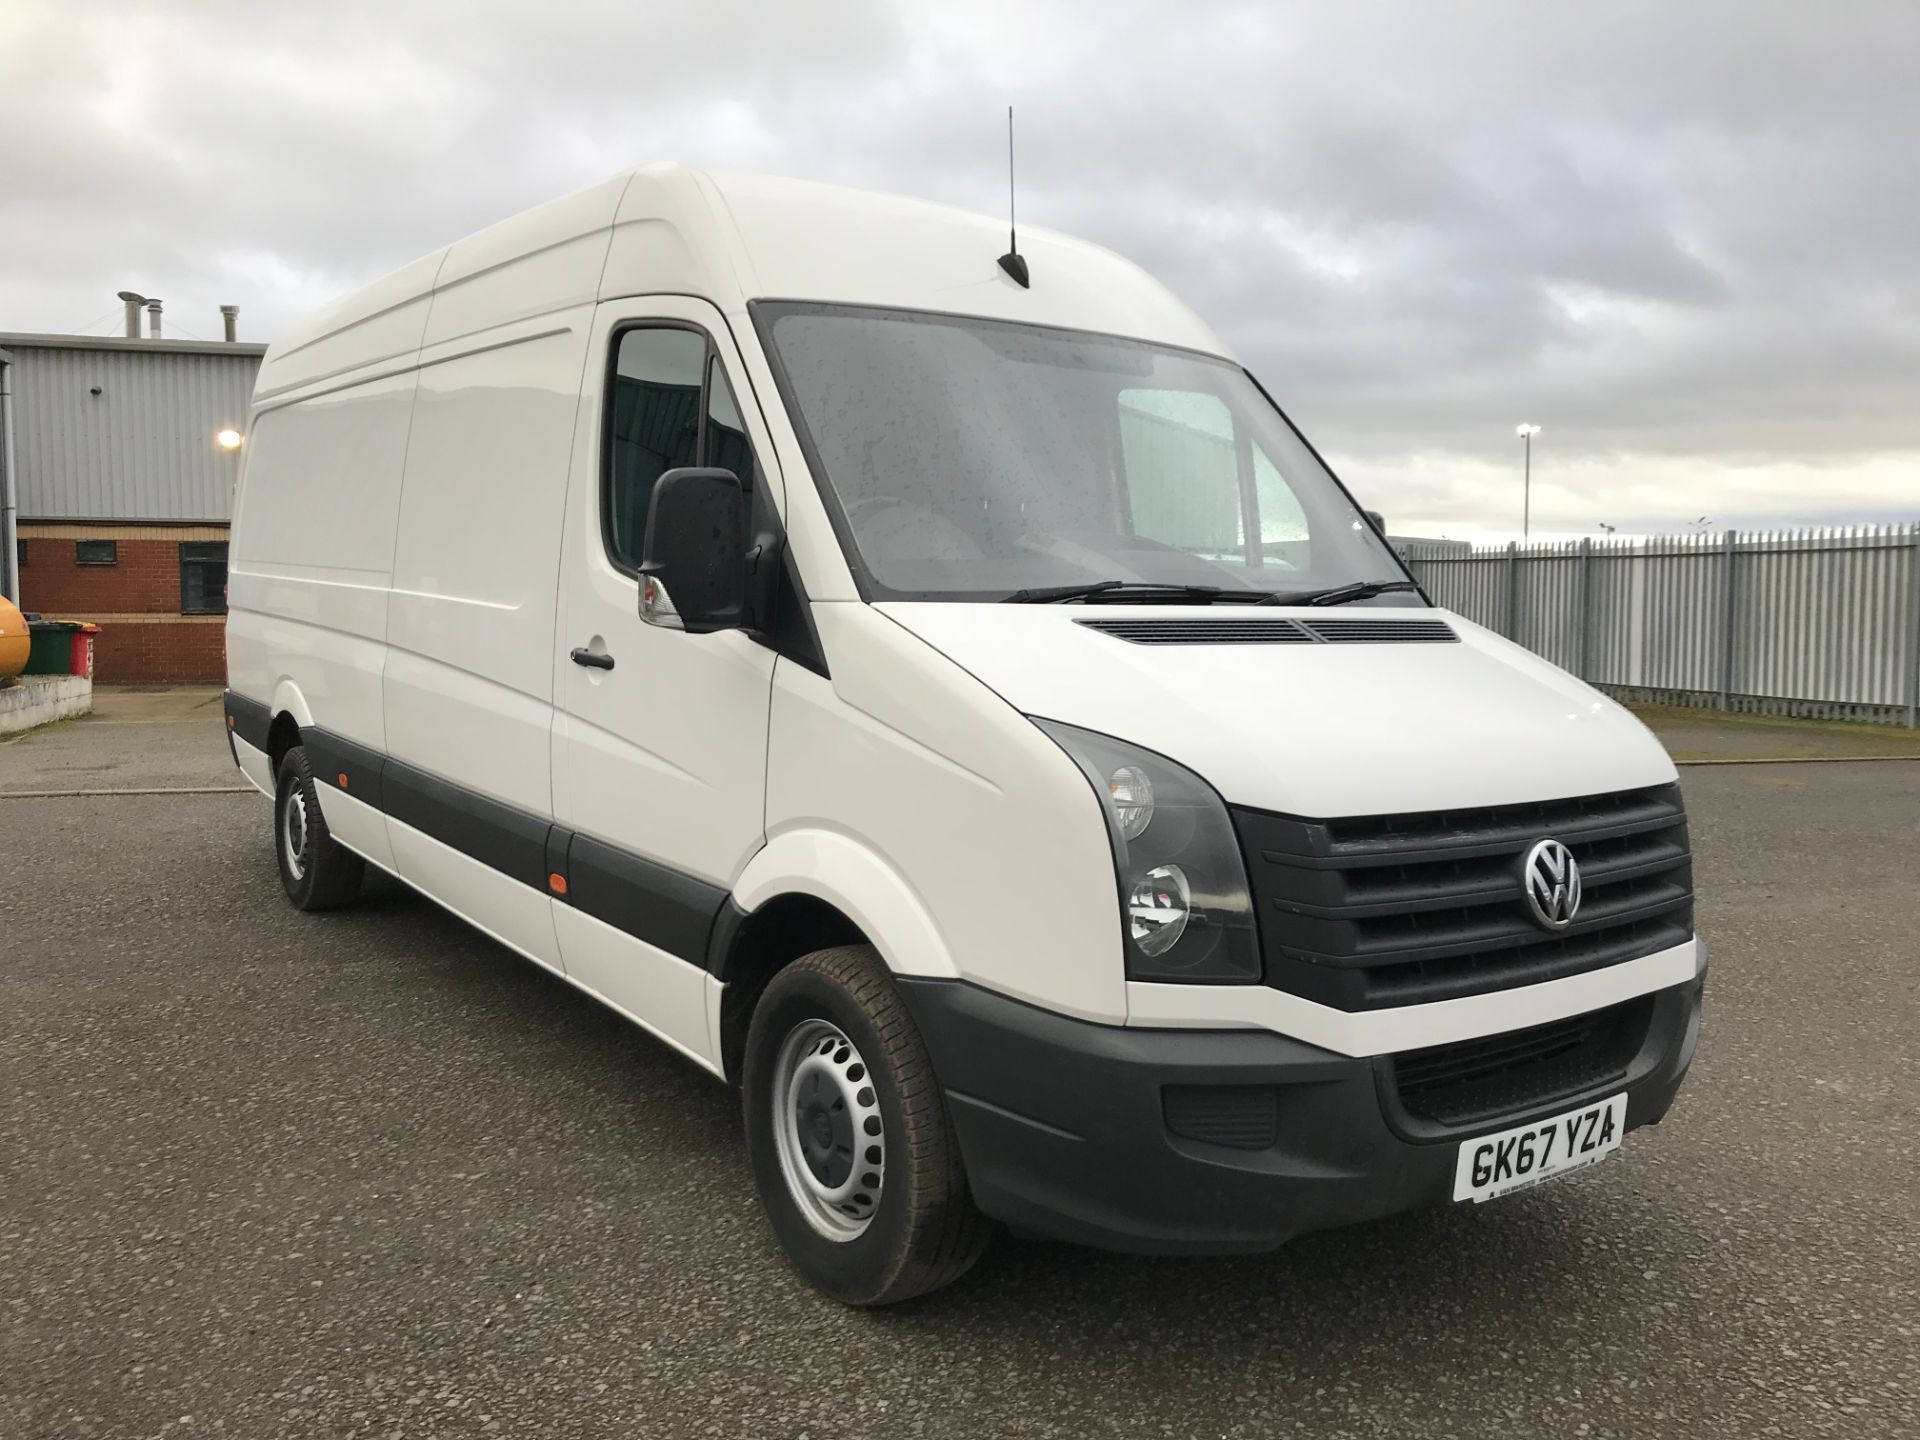 2017 Volkswagen Crafter 2.0 Tdi 140Ps Startline High Roof Van (GK67YZA)